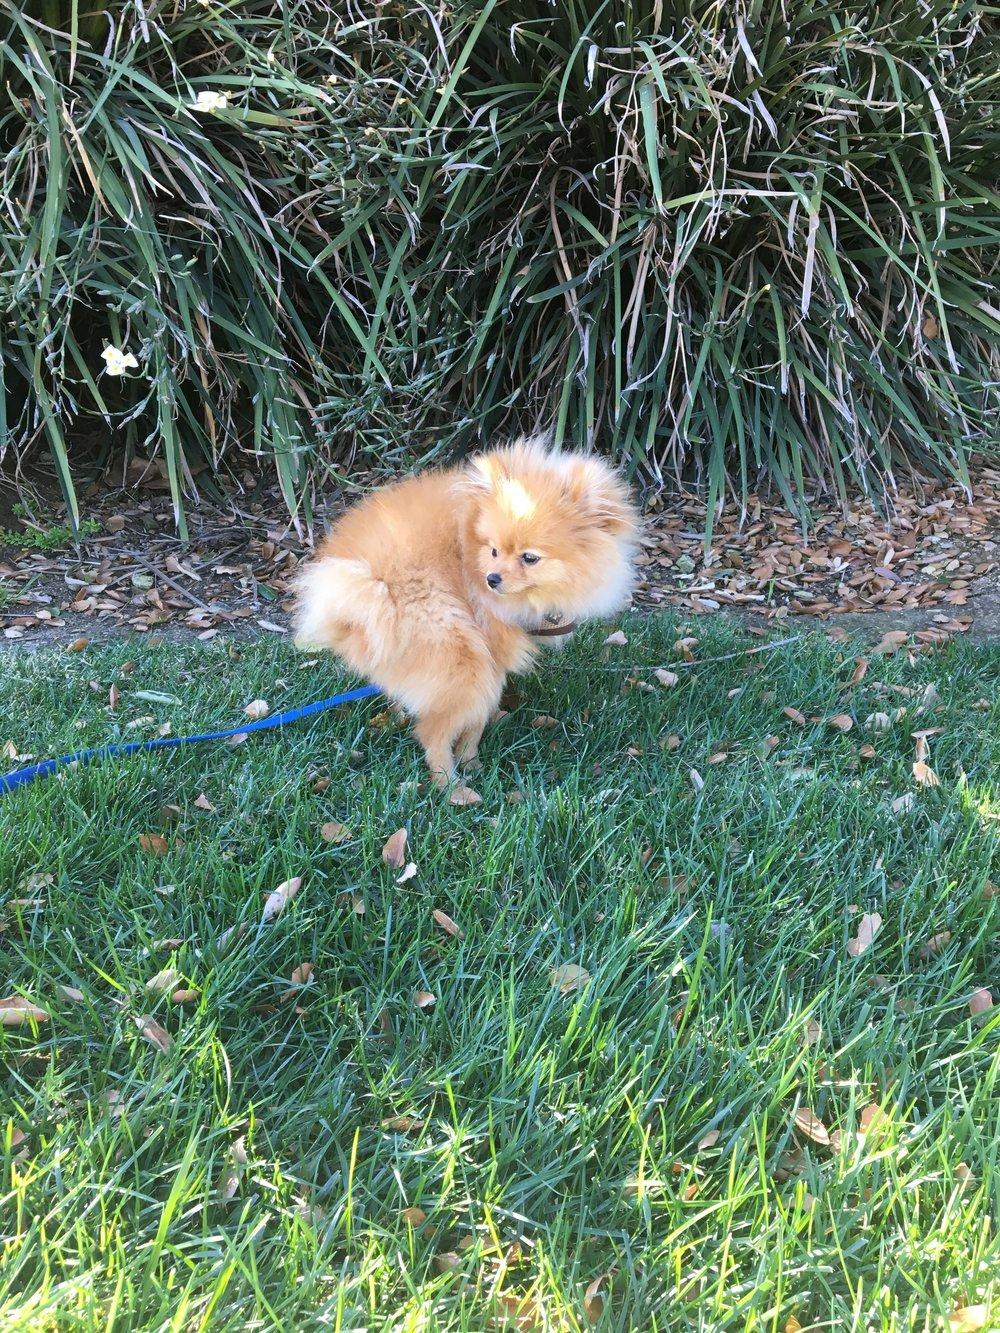 Puppy Training In Los Angeles: How to potty train a Pomeranian puppy.